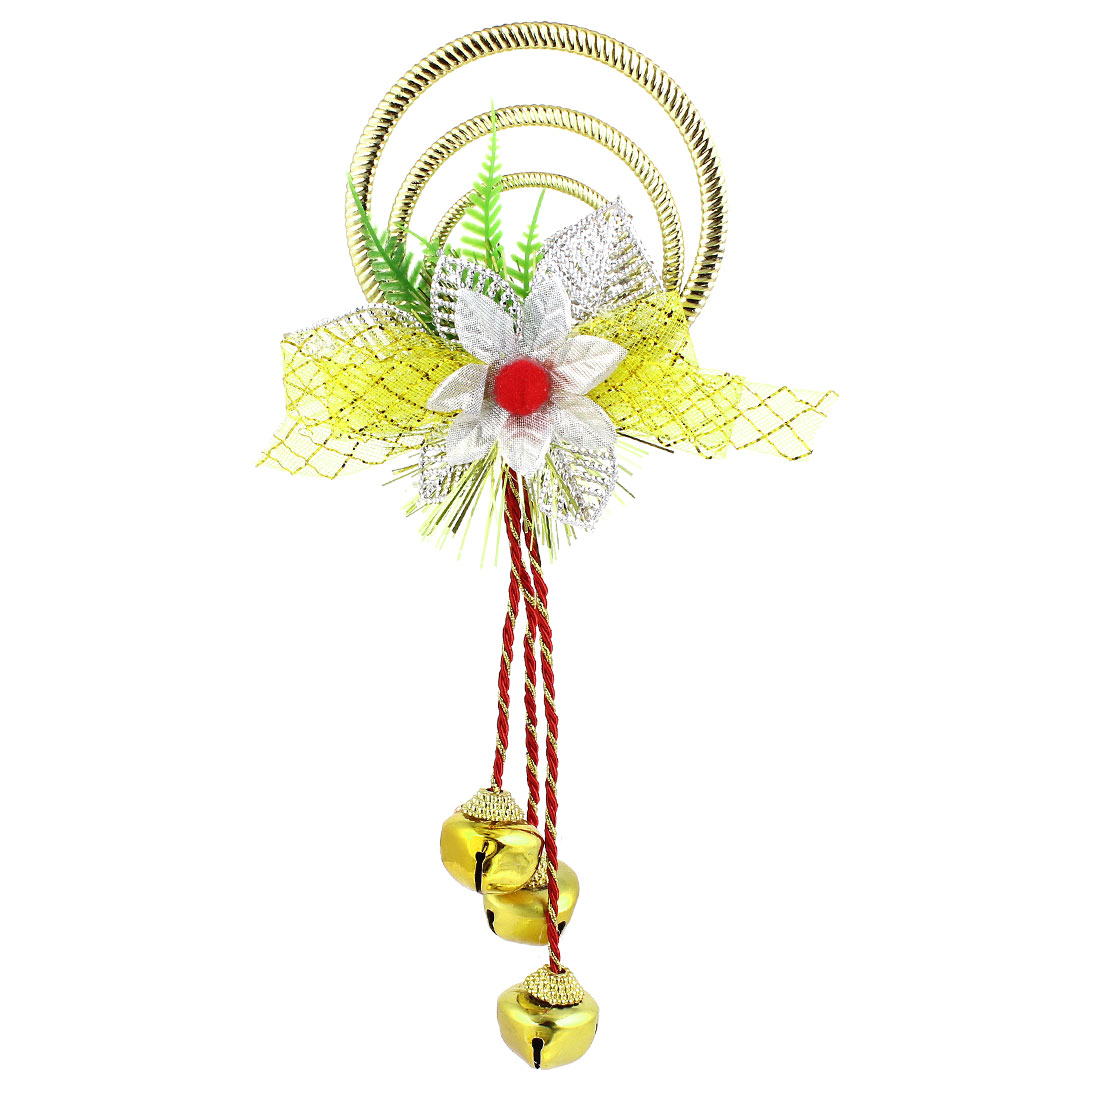 Bowknot Flowers Detail Plastic Rings Metal Bell Pendant Gold Tone for Christmas Xmas Tree Decor